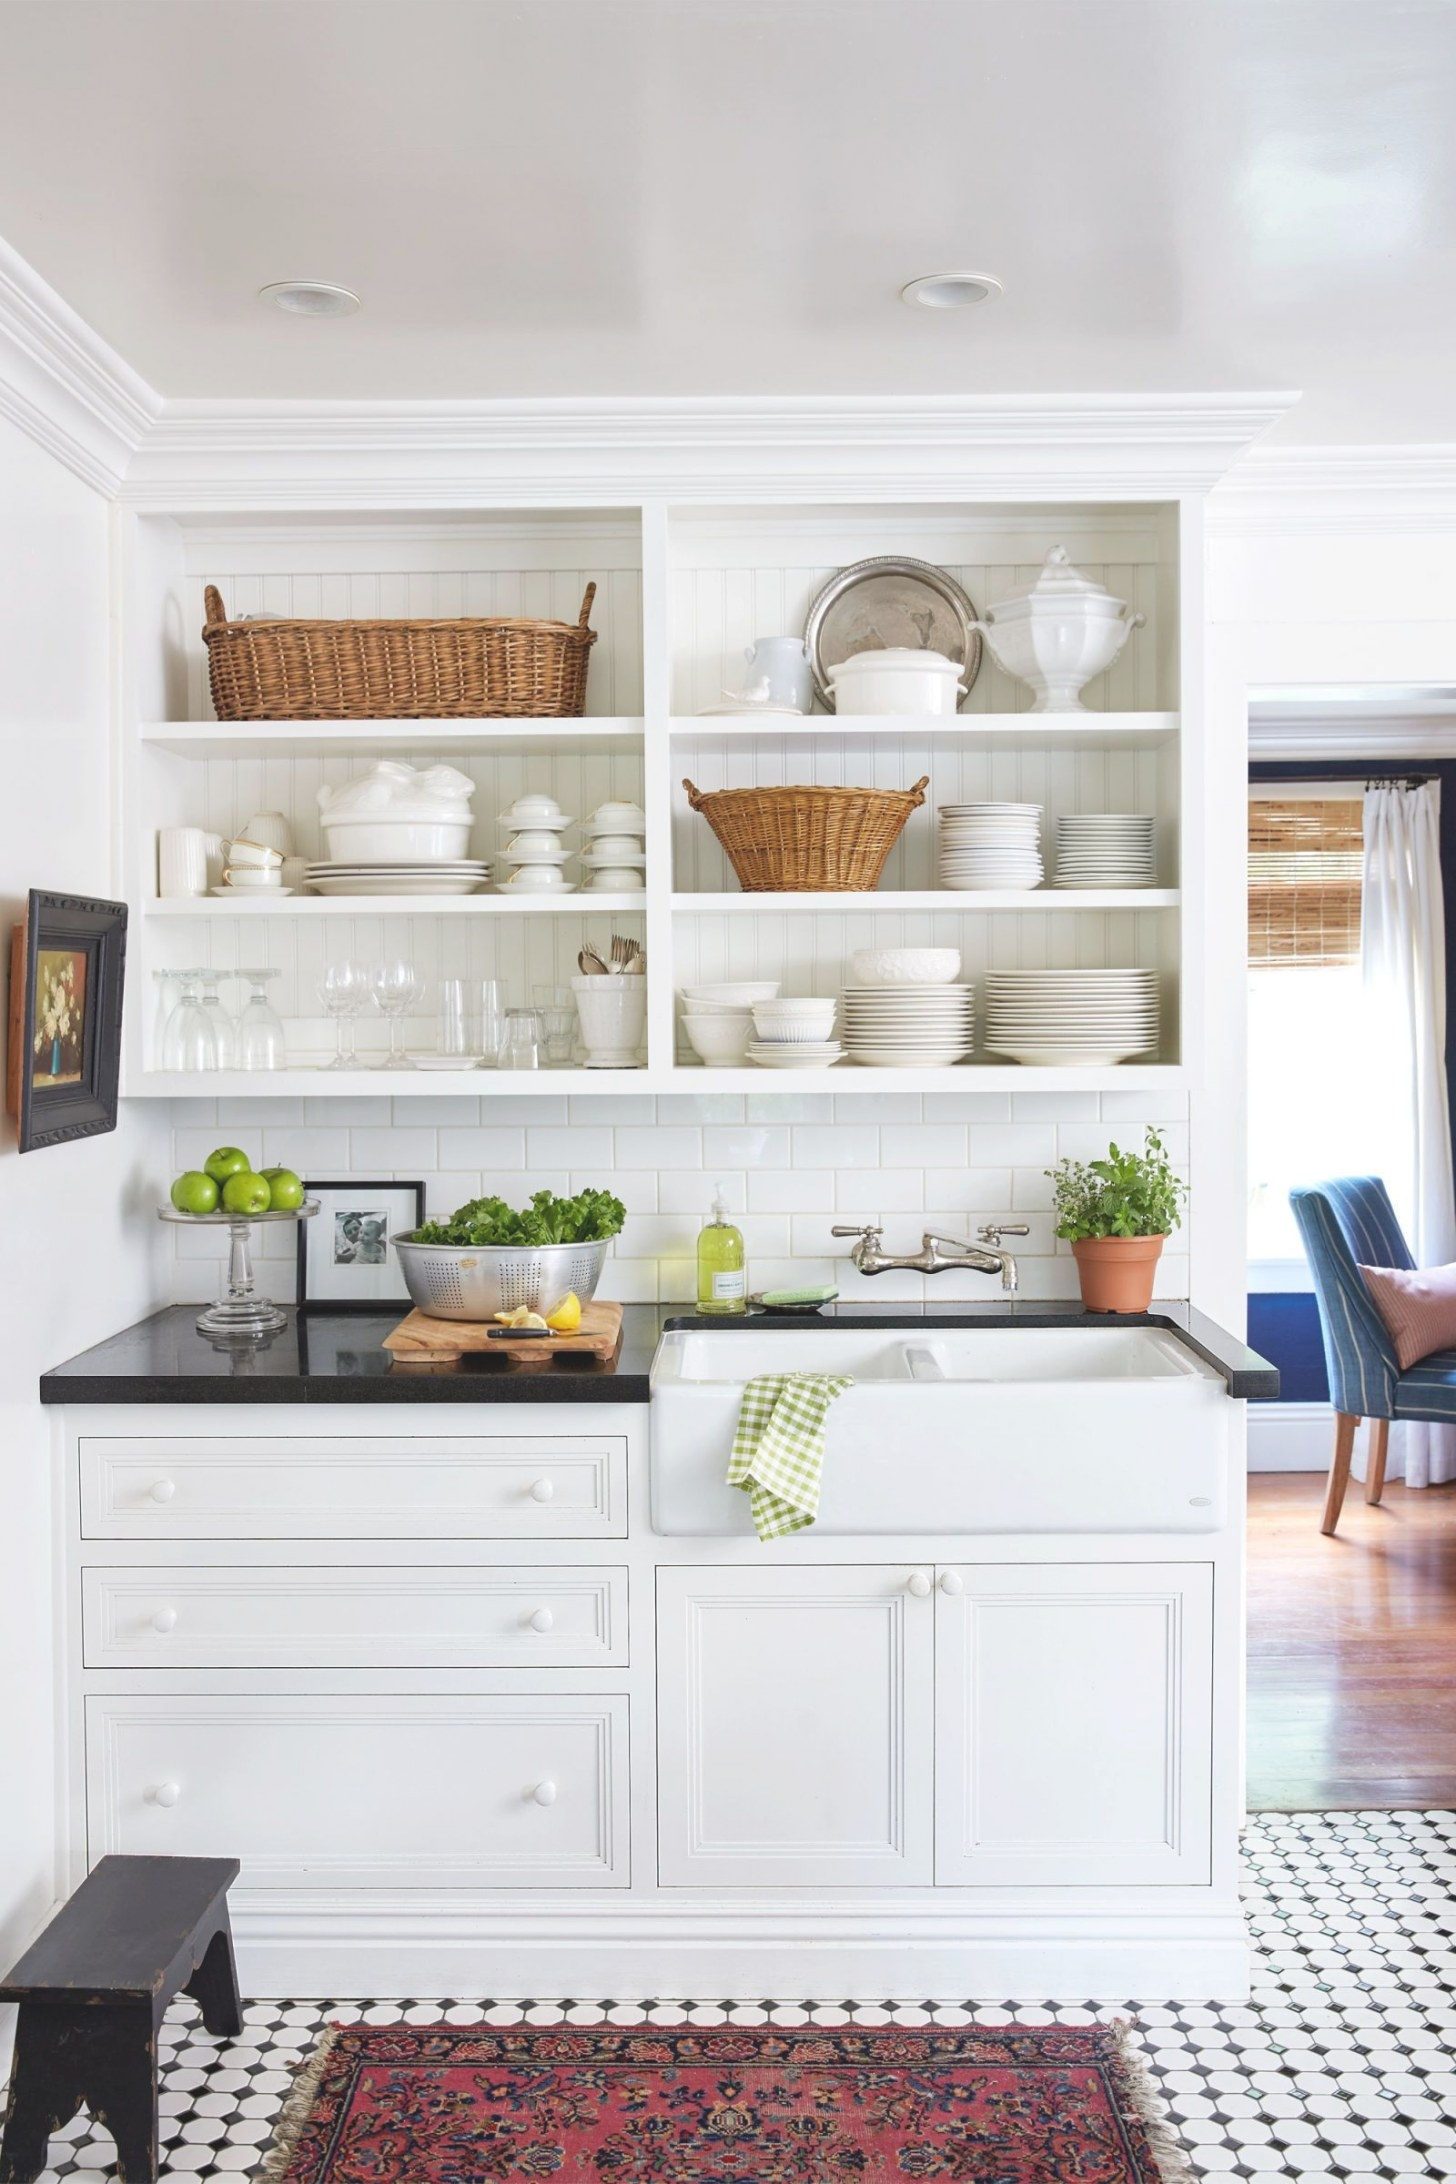 10 Must-Follow Rules For Making A Small Space Beautiful throughout Image Of Small Kitchen